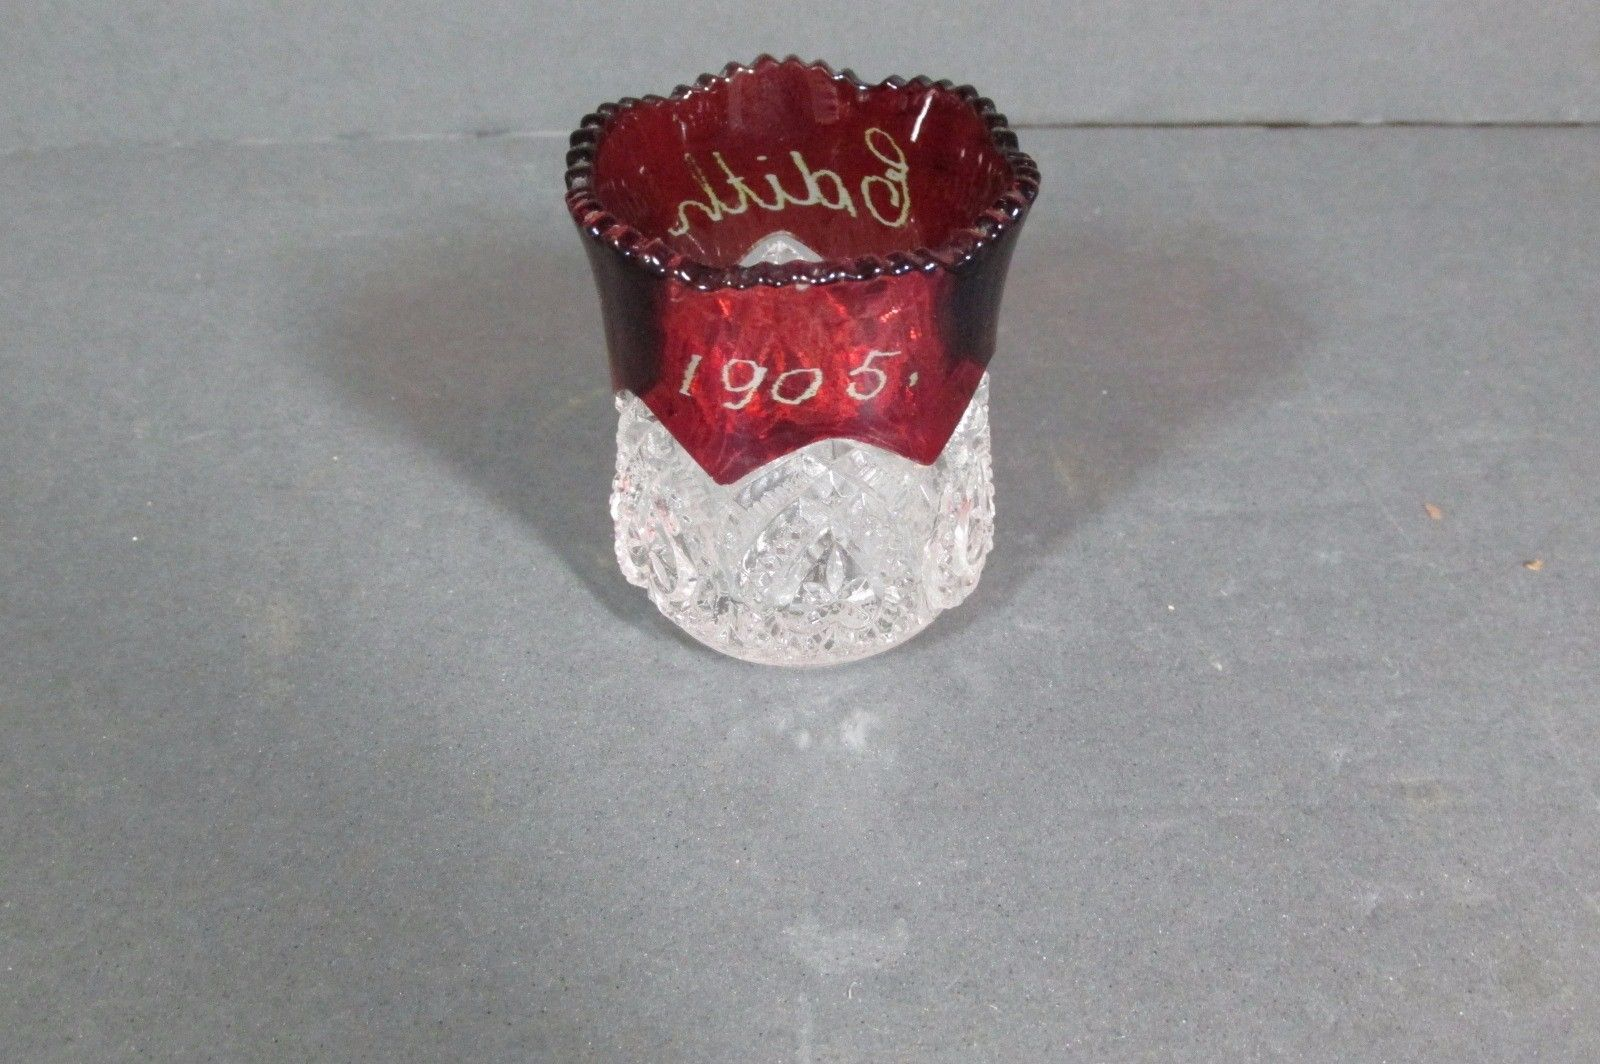 Primary image for 1905 Toothpick Holder Ruby Flash & Pressed, EDITH, Free Shipping